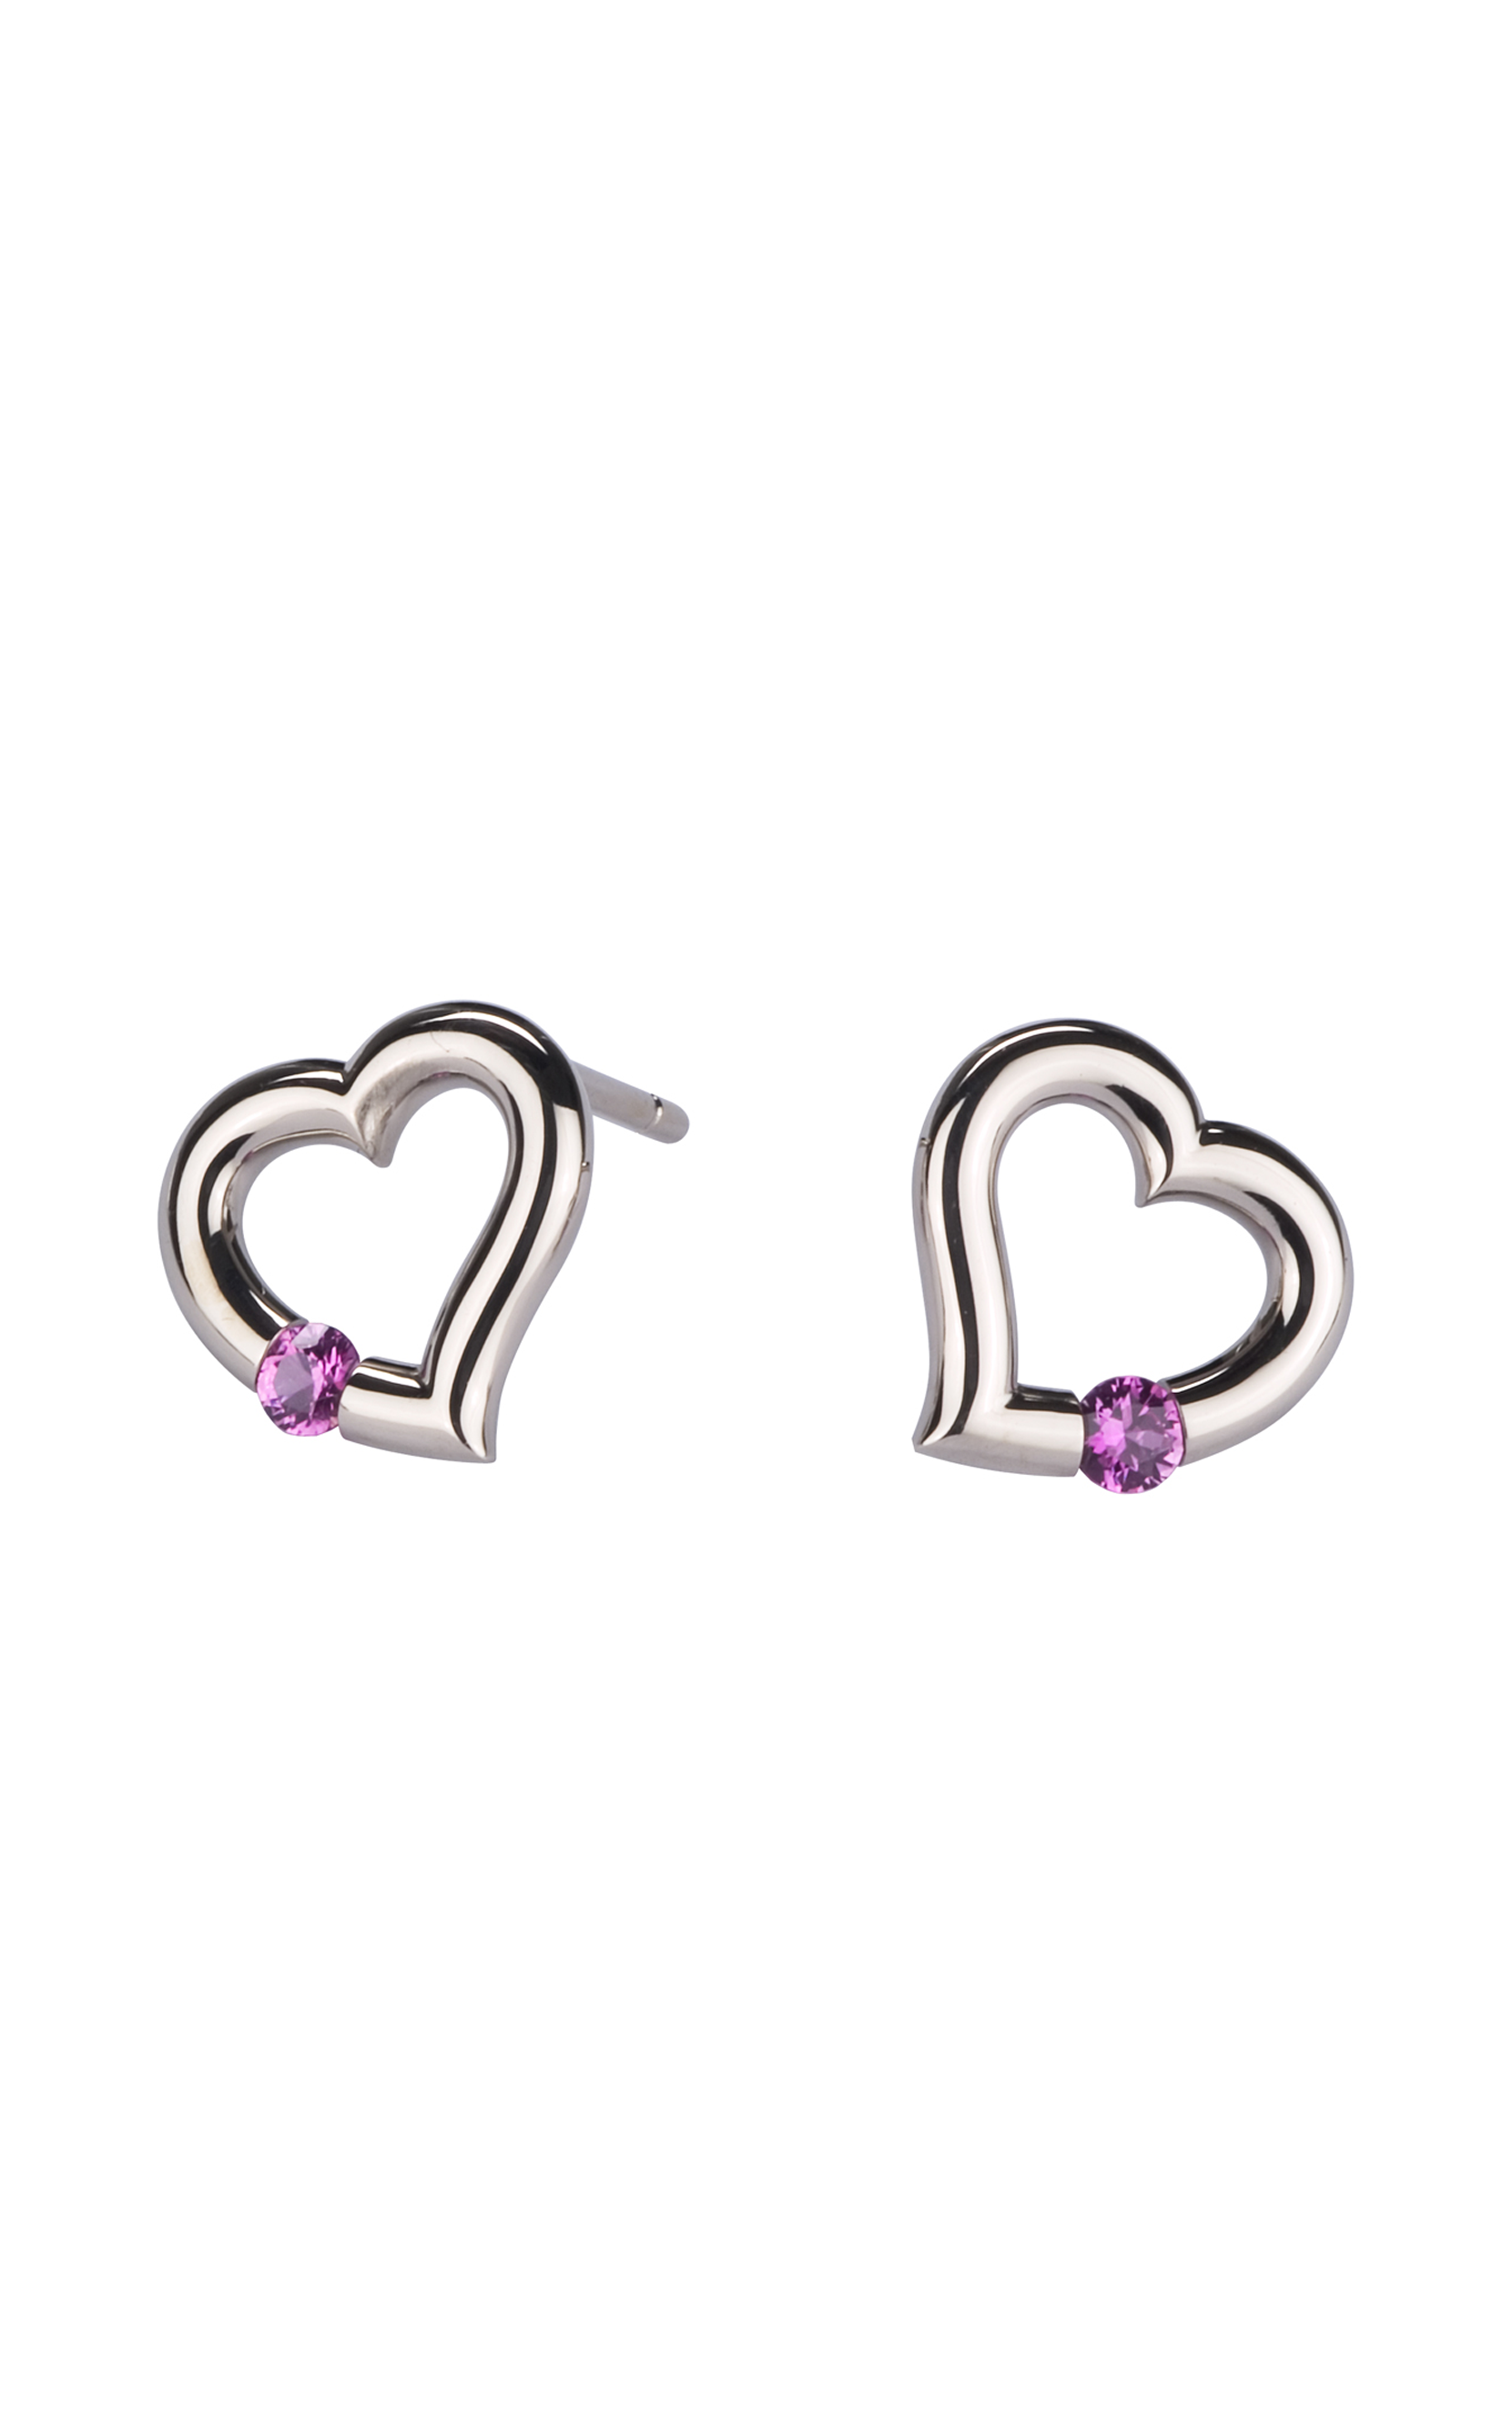 shaped silver women s natural shape heart earrings jewellery sterling citrine collections franki facetted baker stud